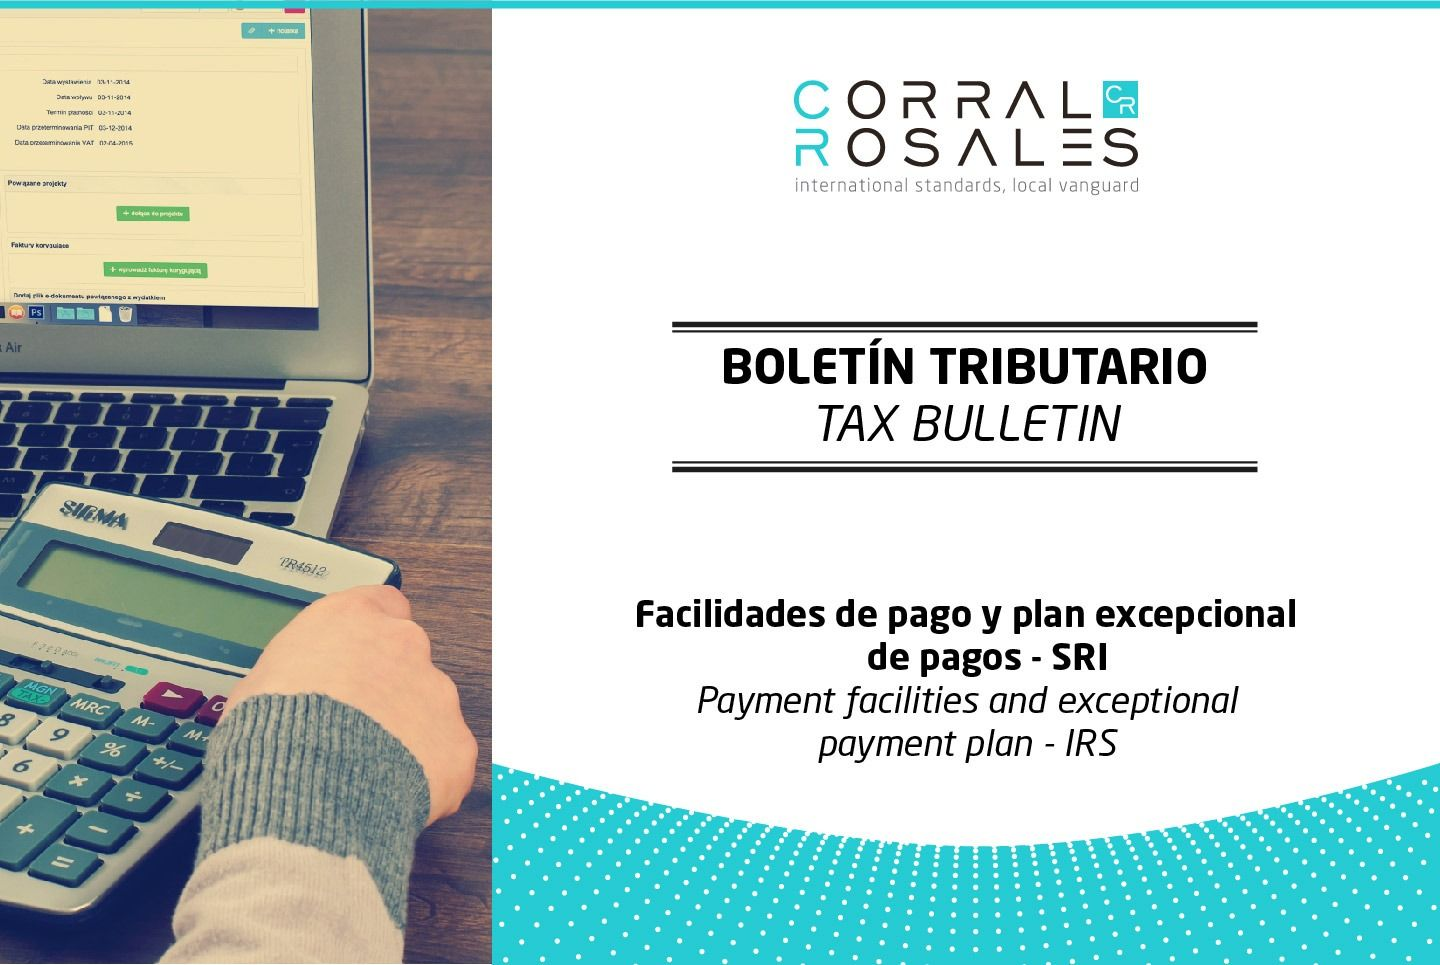 payment-facilities-and-exceptional-payment-plan-lawyers-ecuador